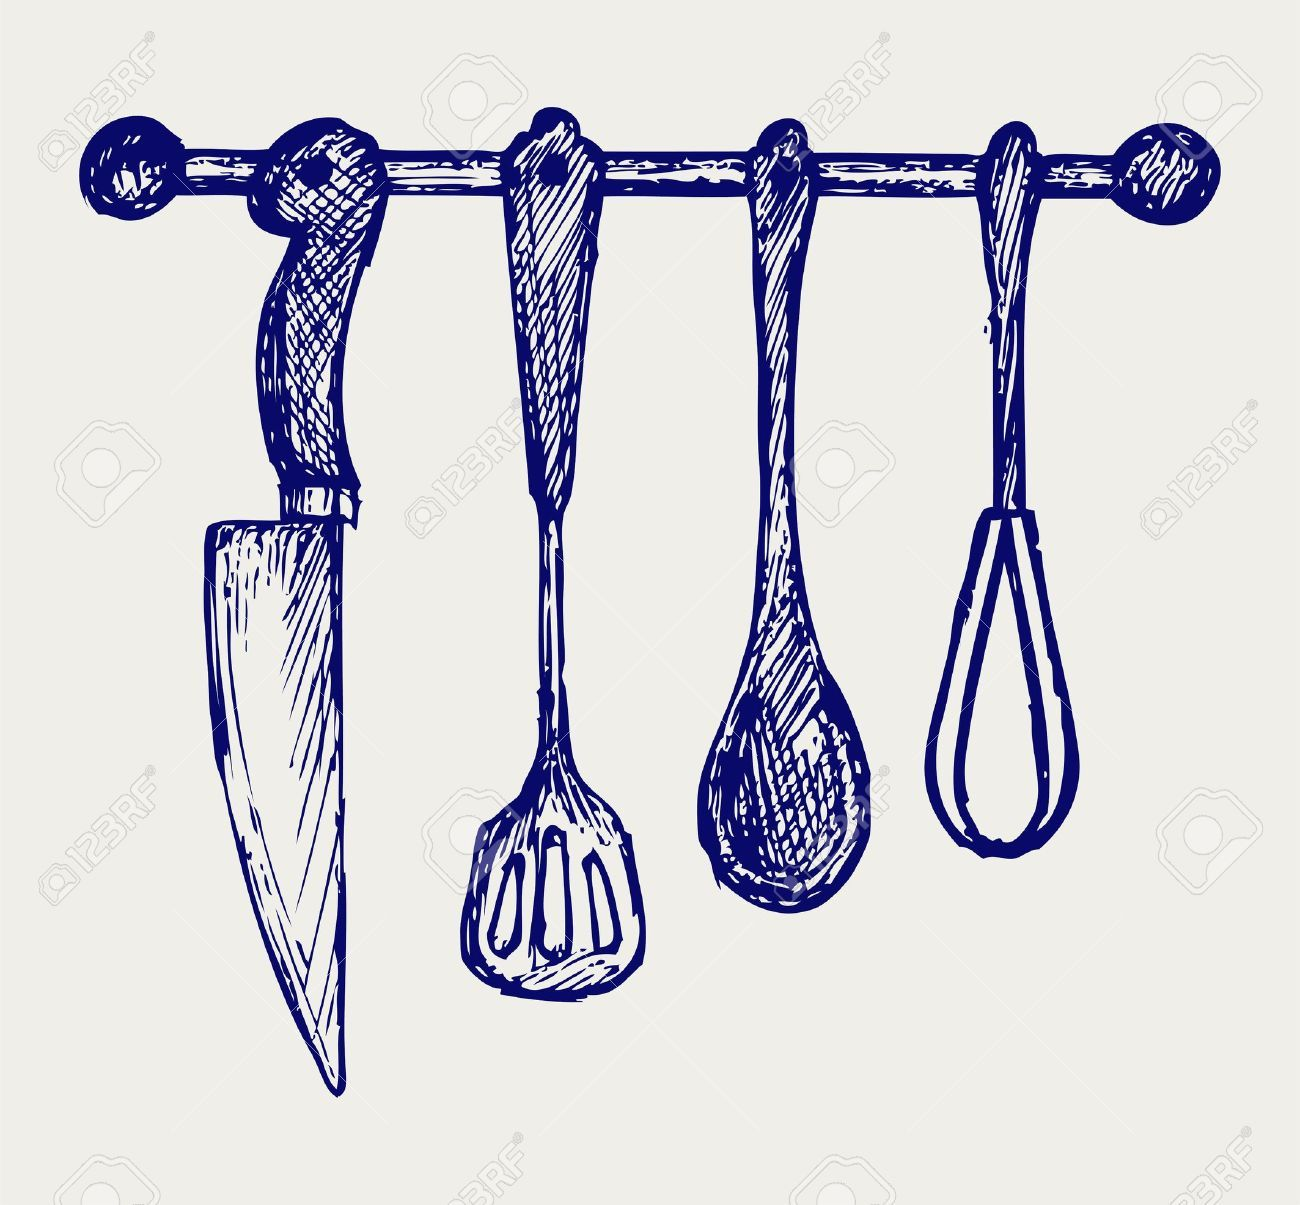 Rack Of Kitchen Utensils. Doodle Style Royalty Free Cliparts ...